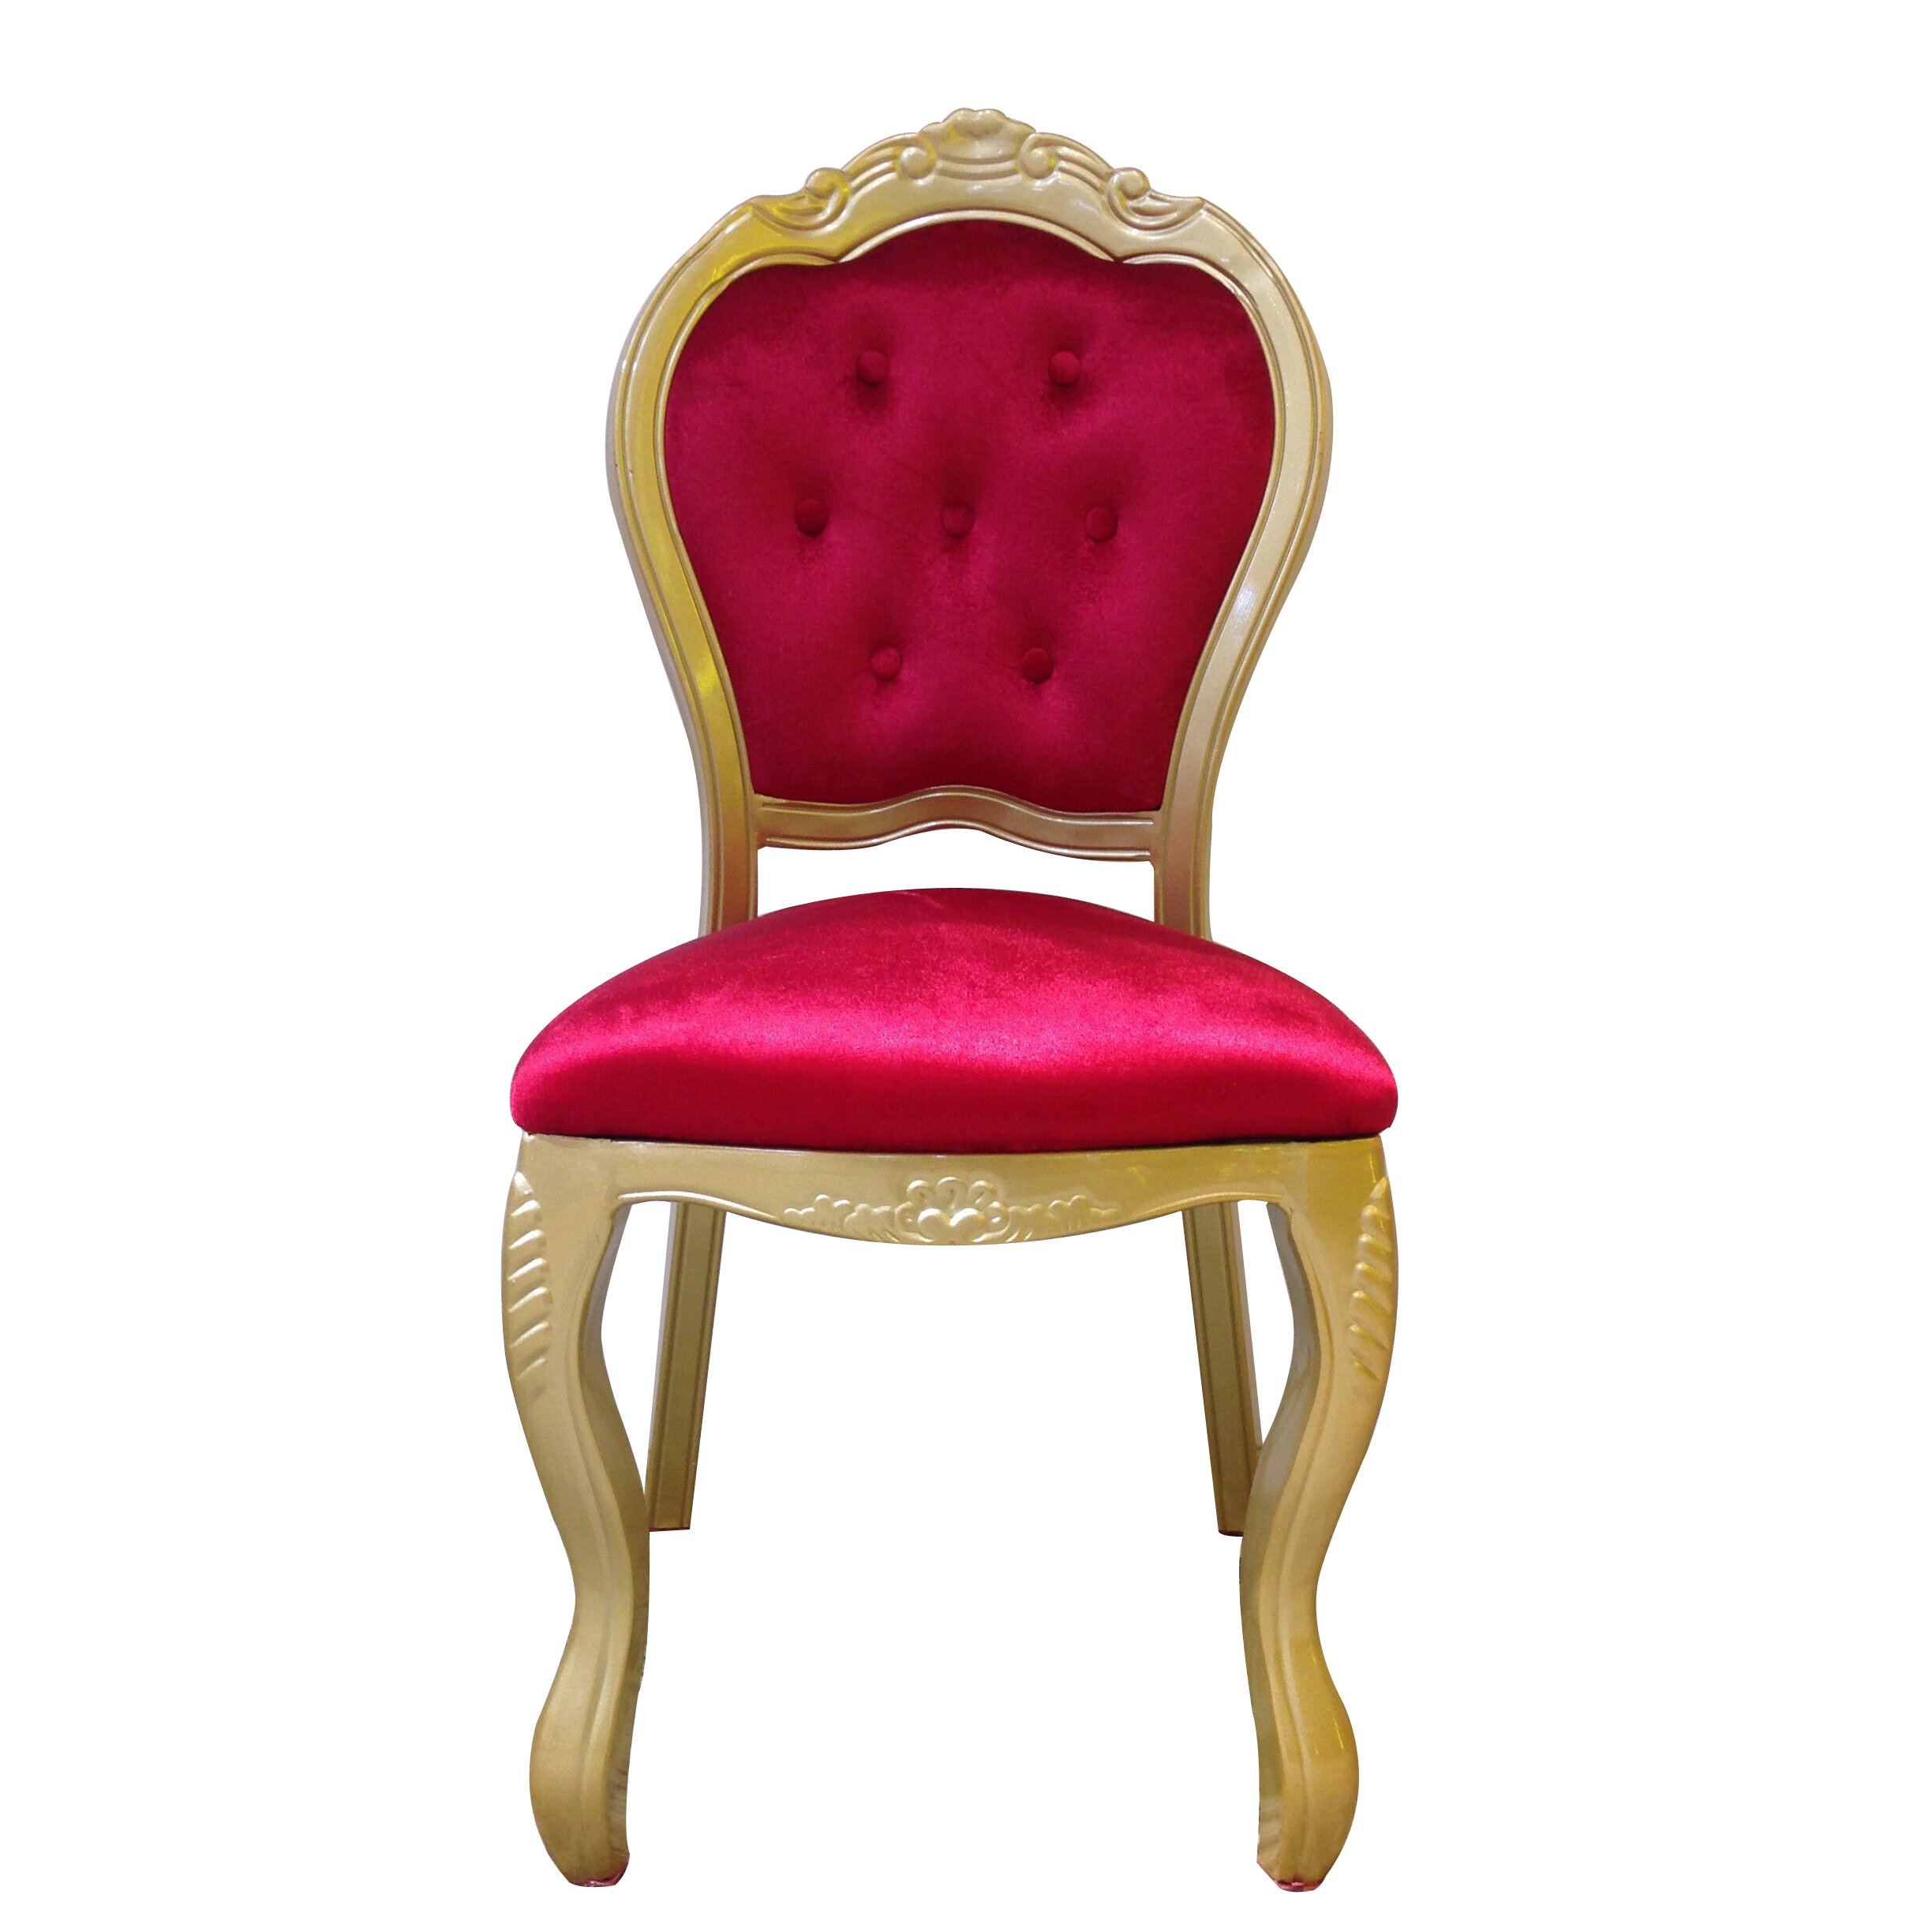 Original Factory Chiavari Chairs Wedding -